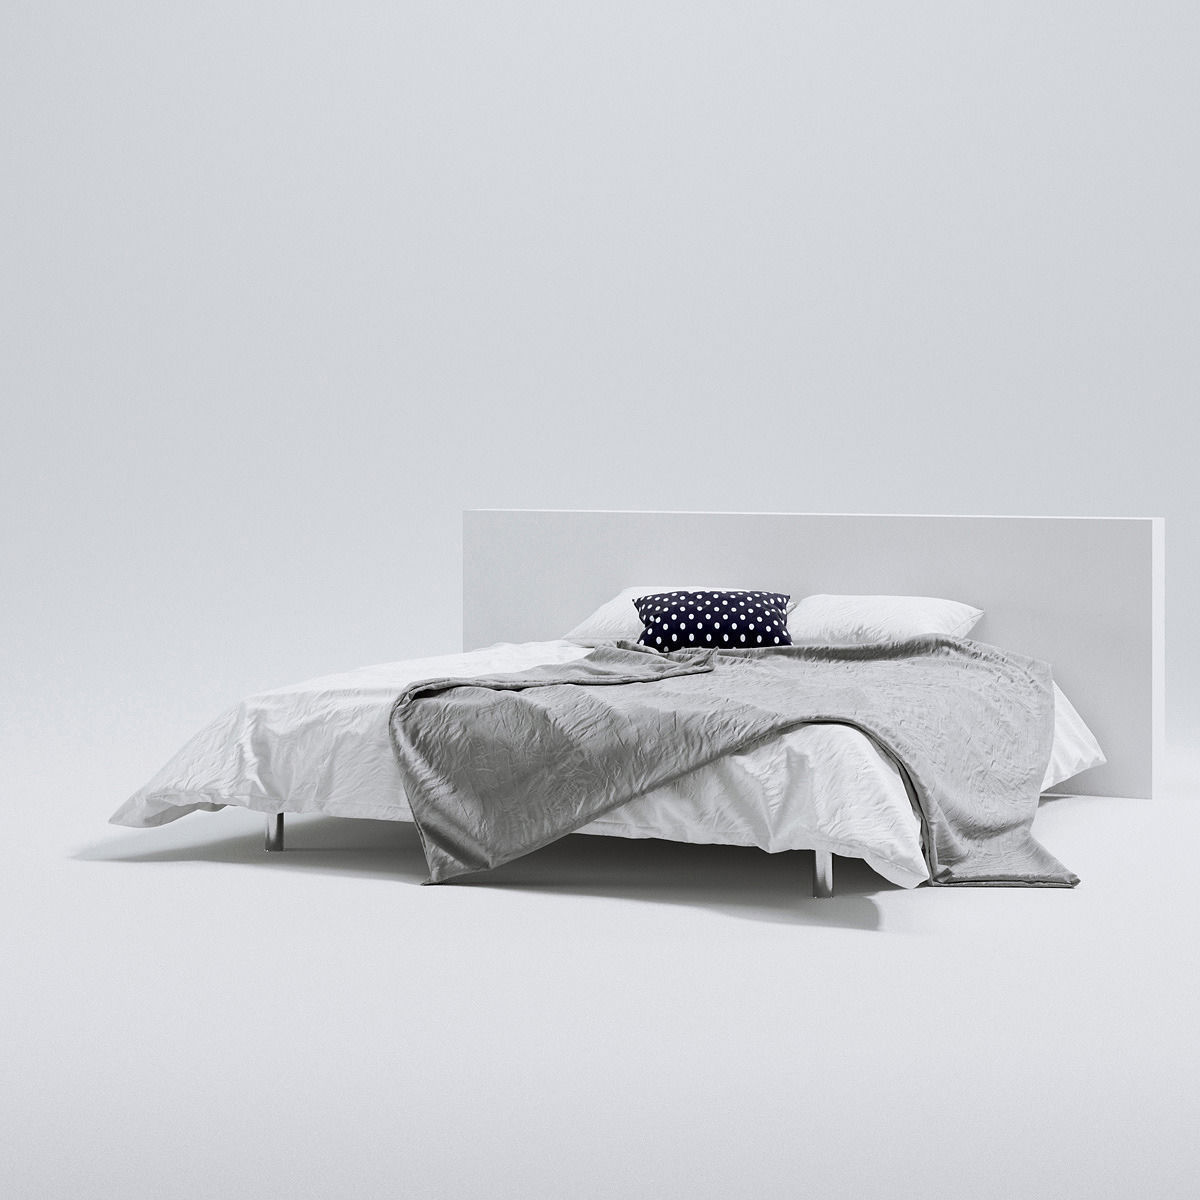 scandinavian bed 3d model max obj fbx c4d